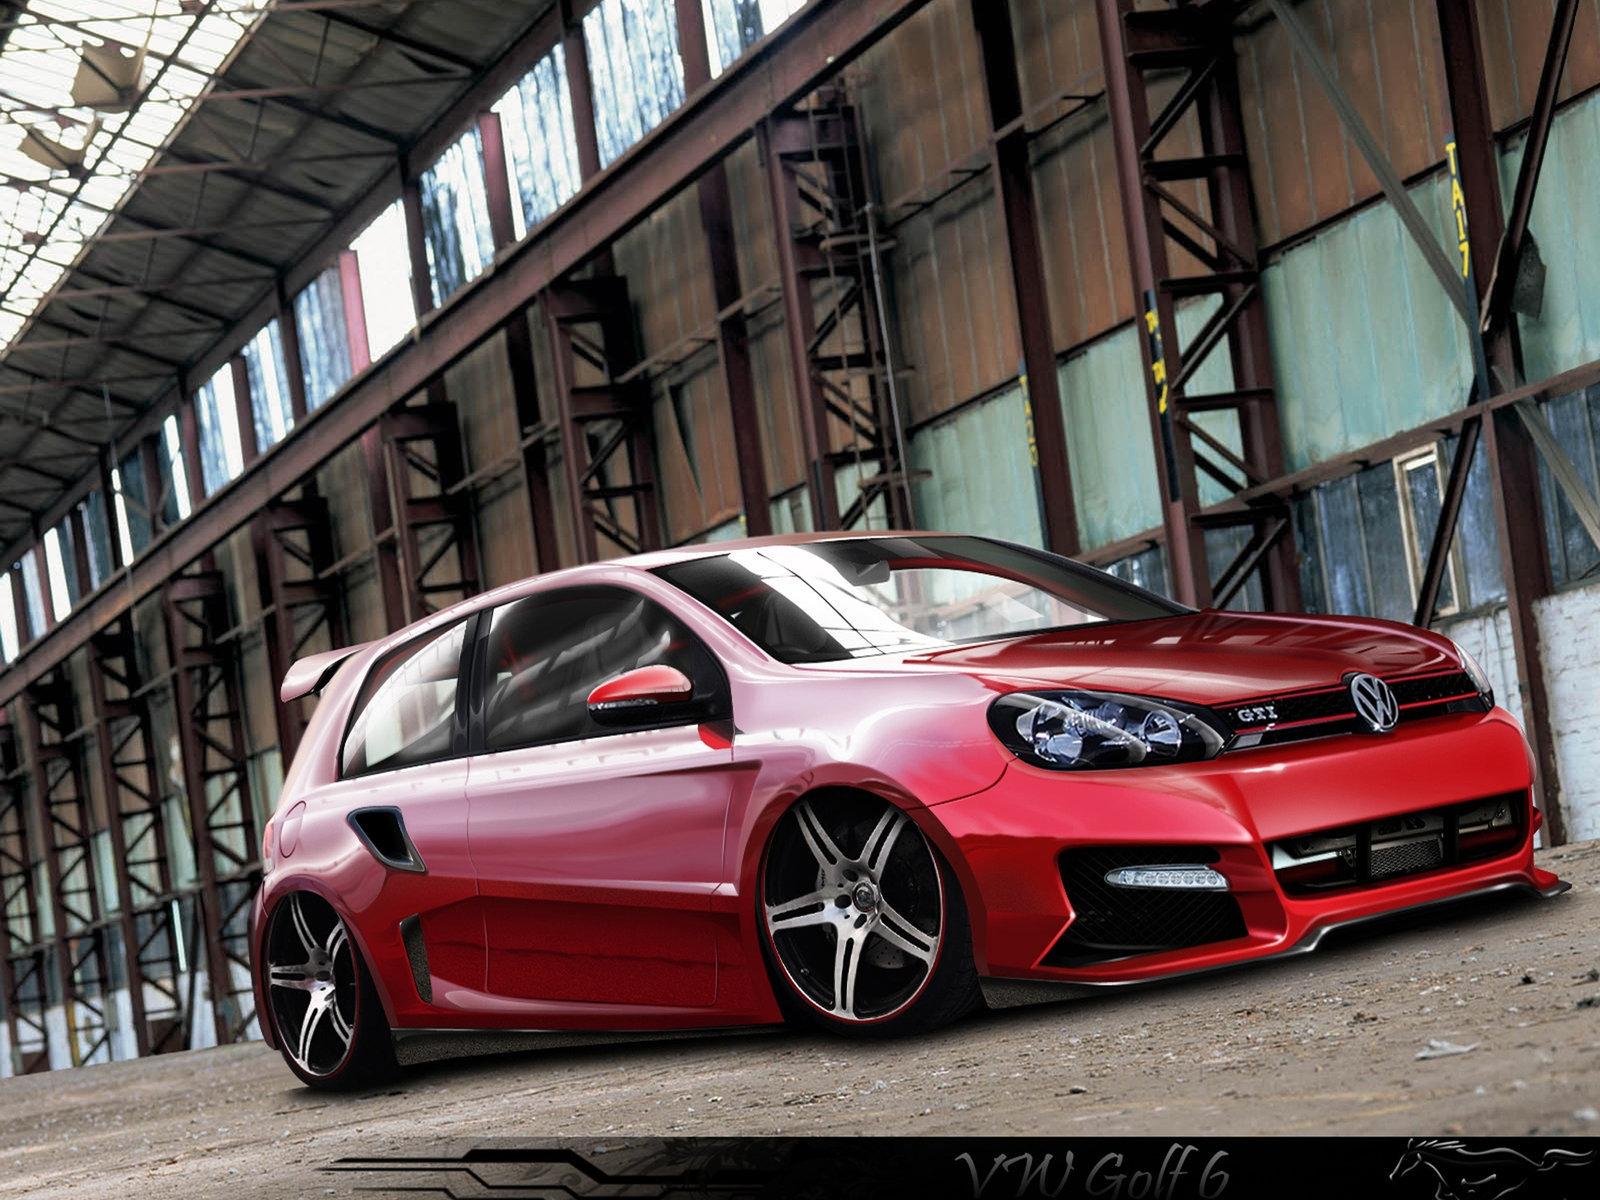 VW Golf 6 GTI Tuning for 1600 x 1200 resolution